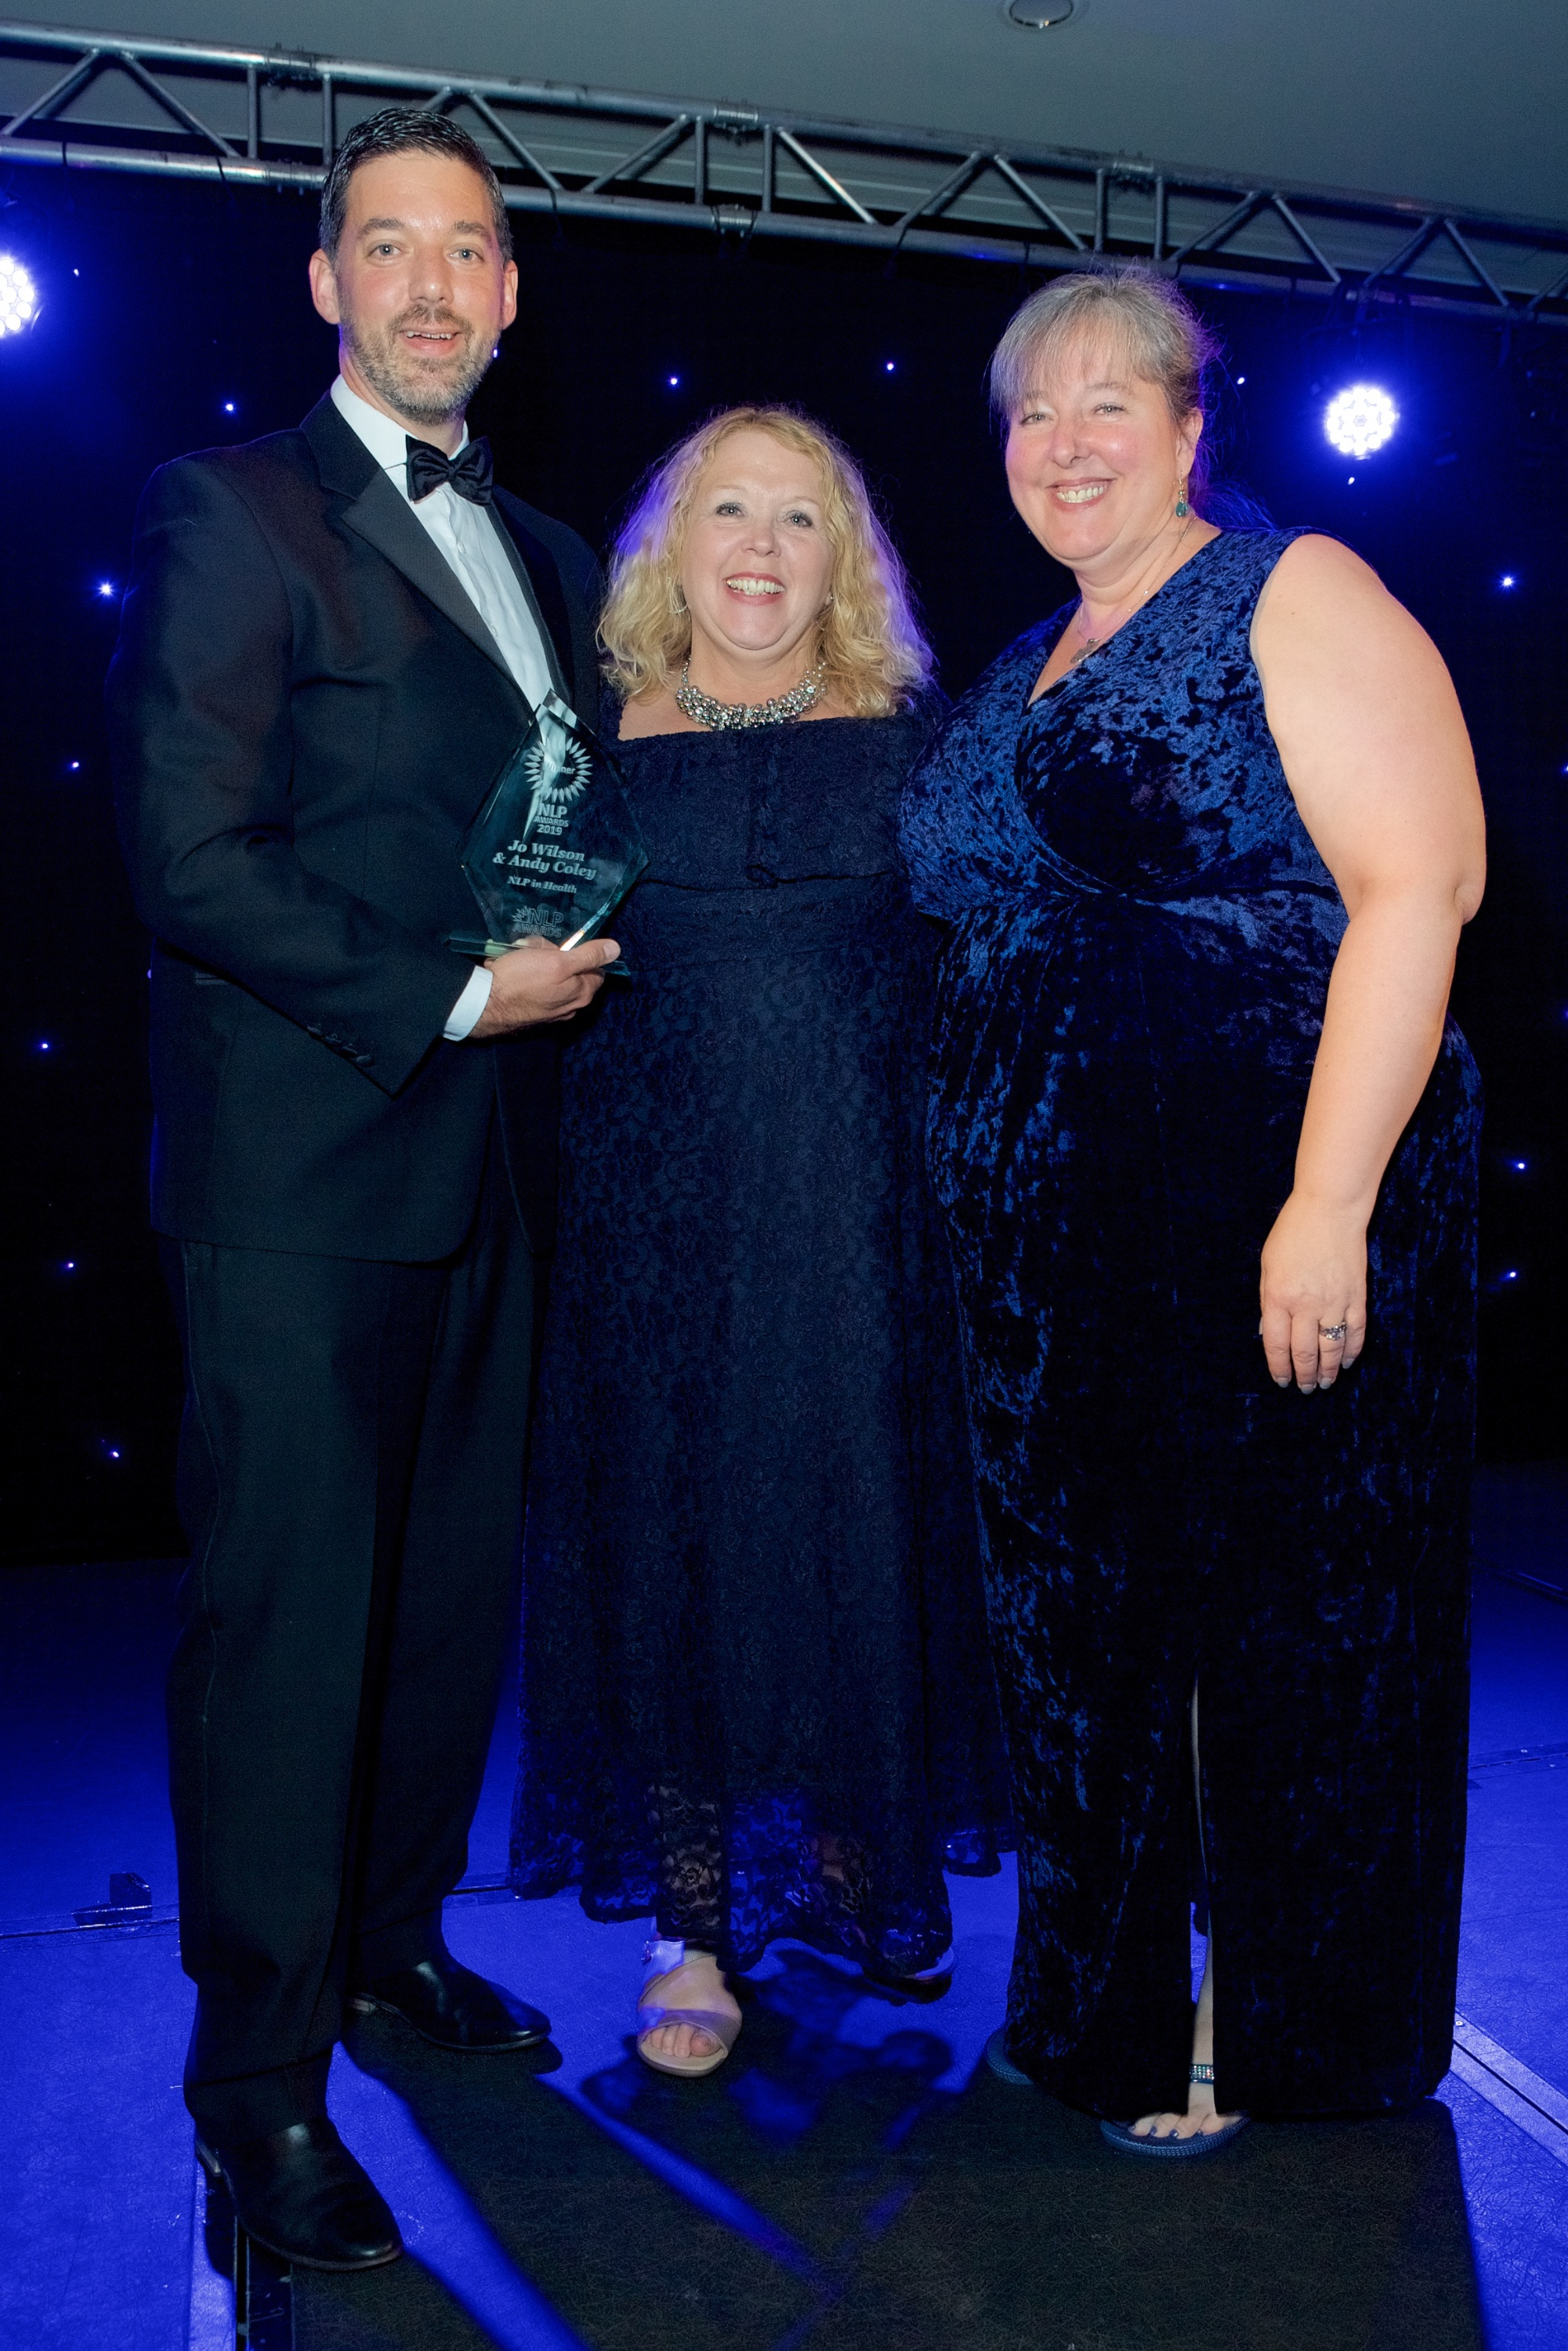 NLP in Healthcare Award Winners 2019